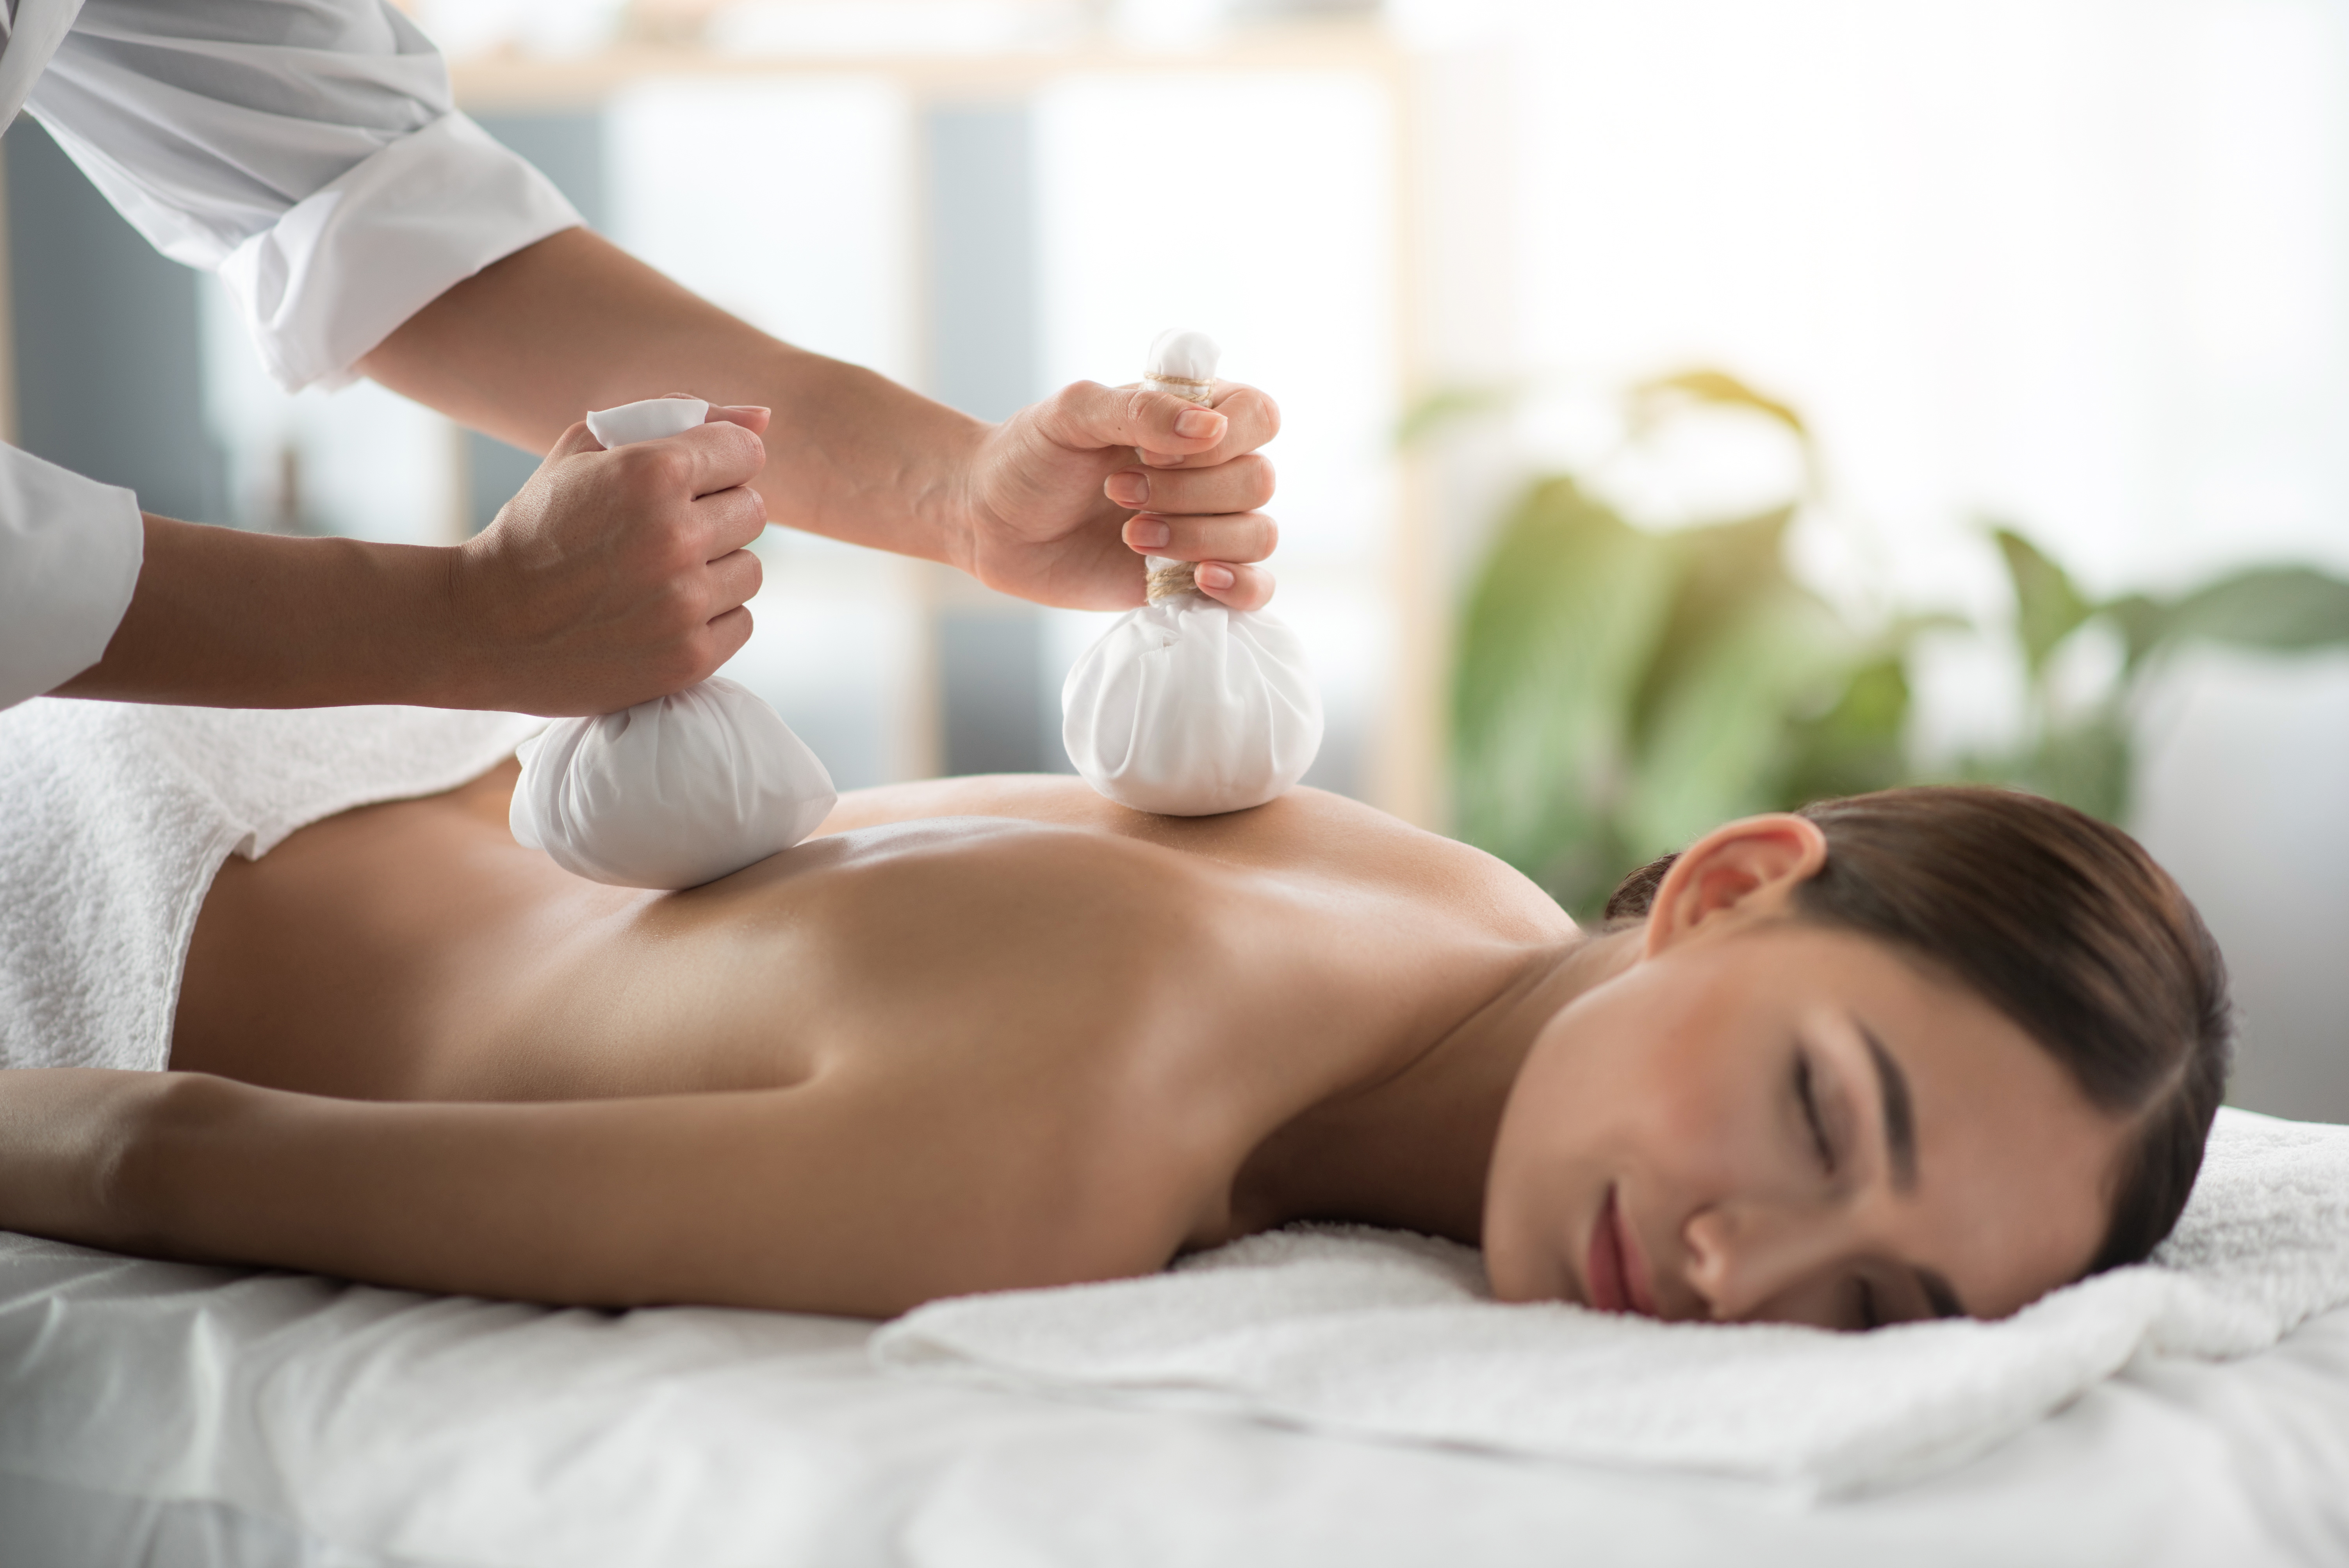 Adding New Massage Treatments to the Menu